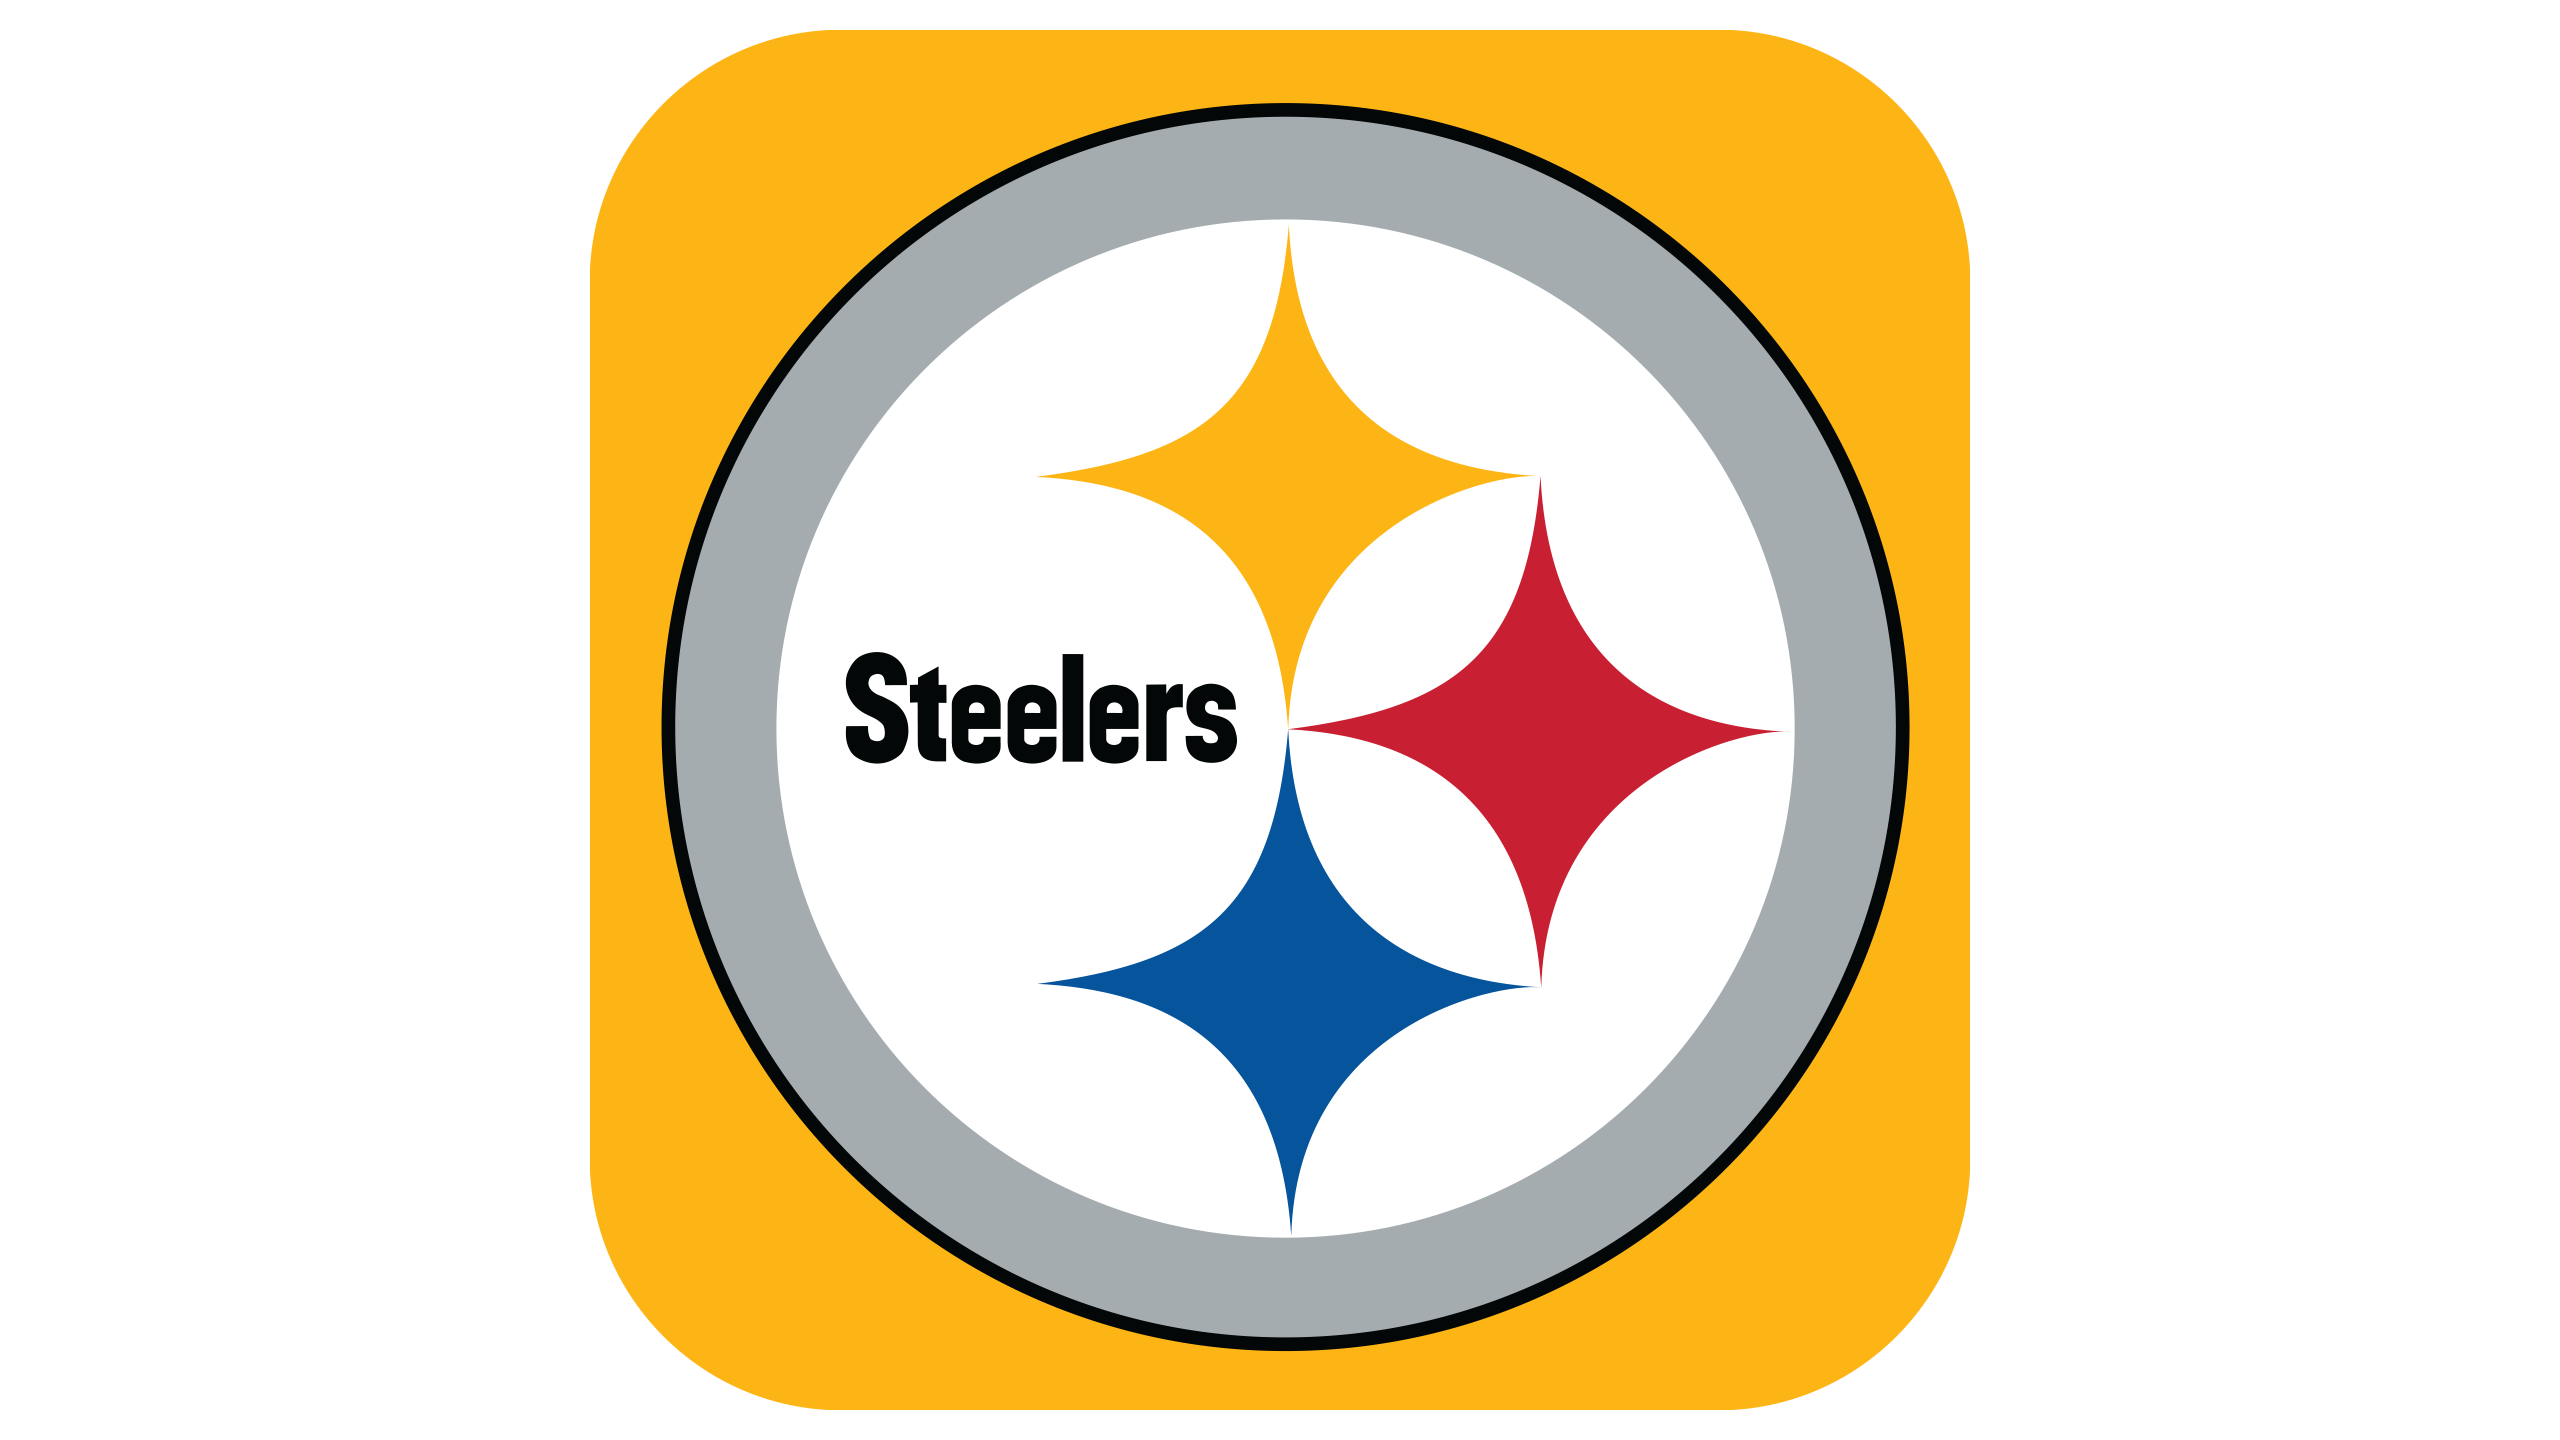 Steelers_Official_Mobile_App_Logo_2560x1440